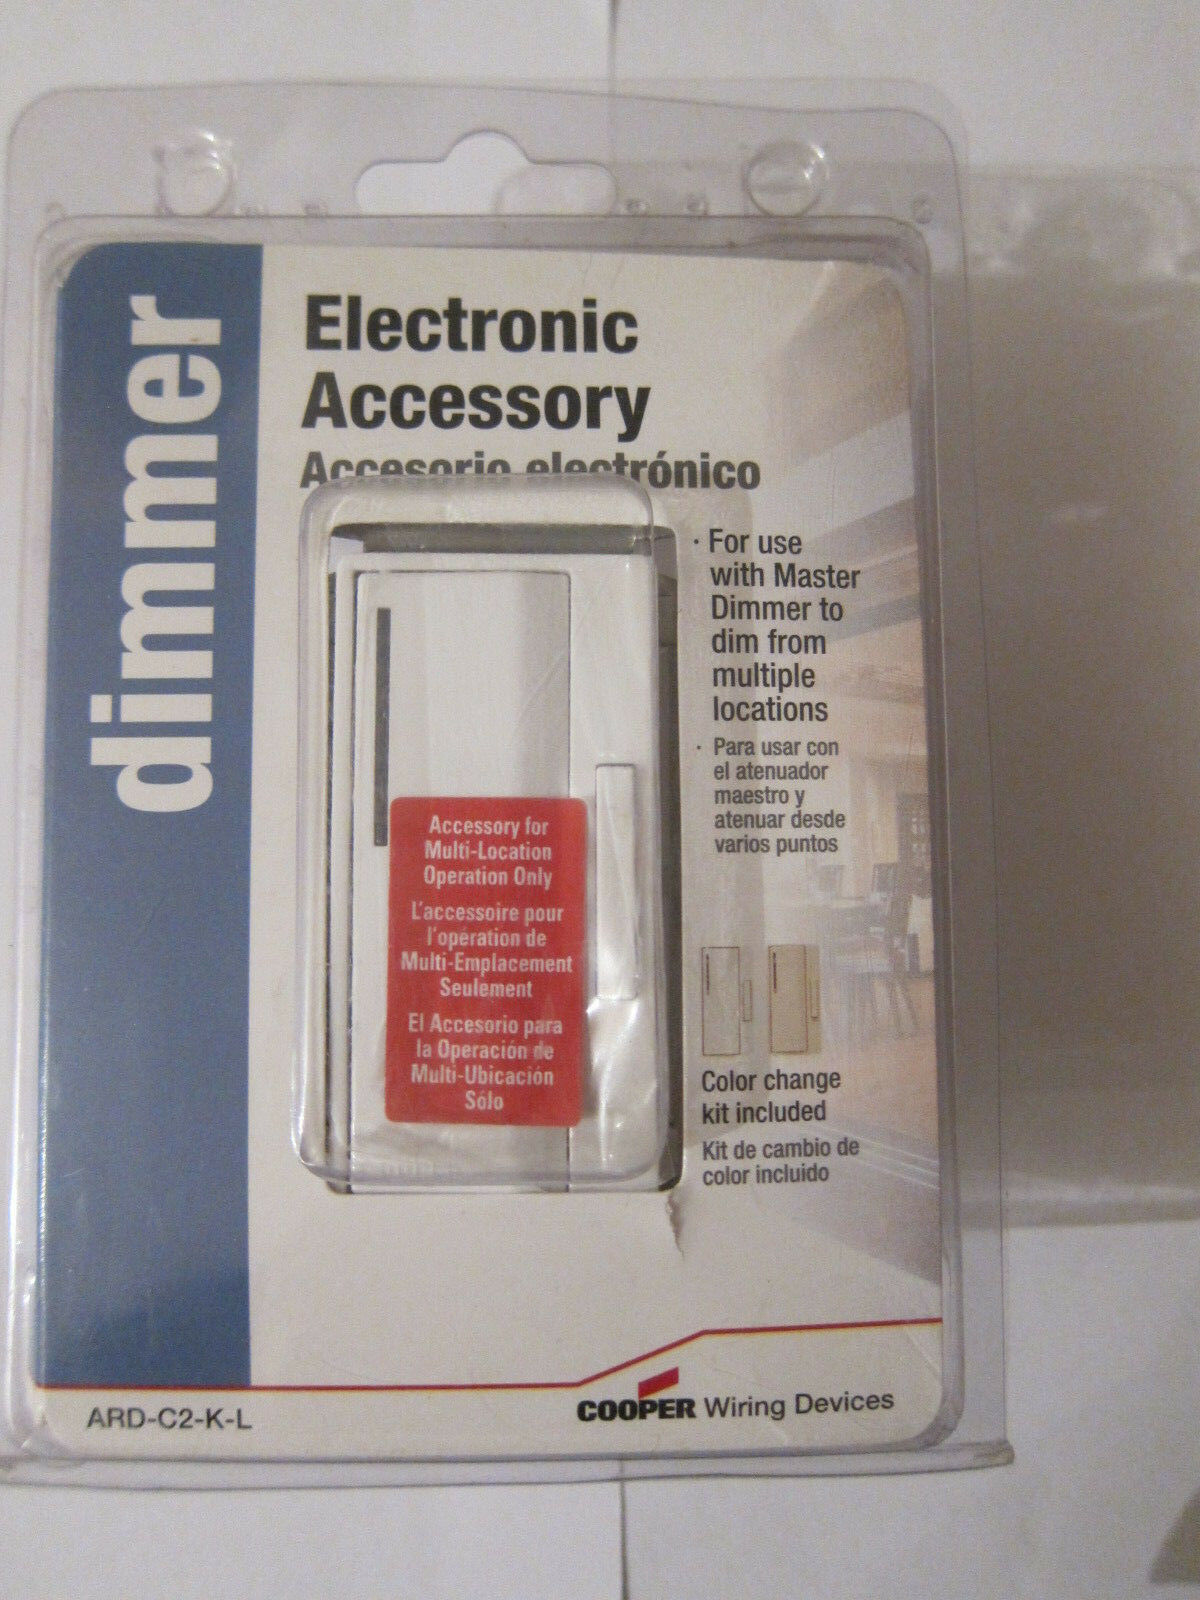 Cooper ARD-C2-K-L Electronic Accessory Must be used with Smart Master Dimmer